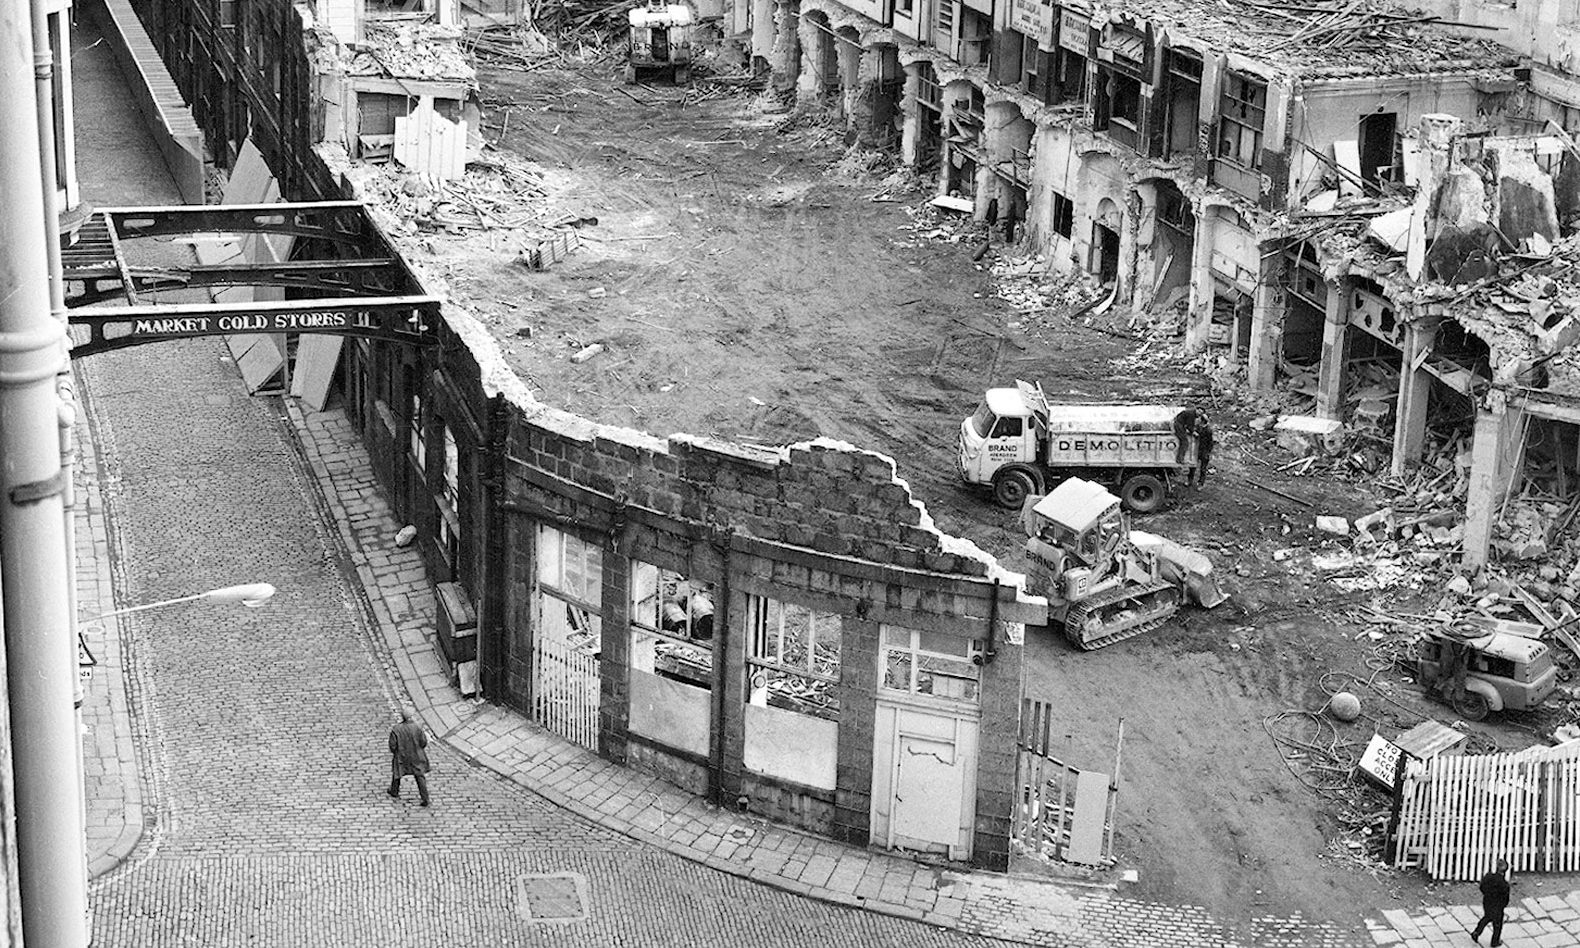 This picture was taken shortly after the bulldozers moved in to take apart the old Aberdeen Market in 1971.